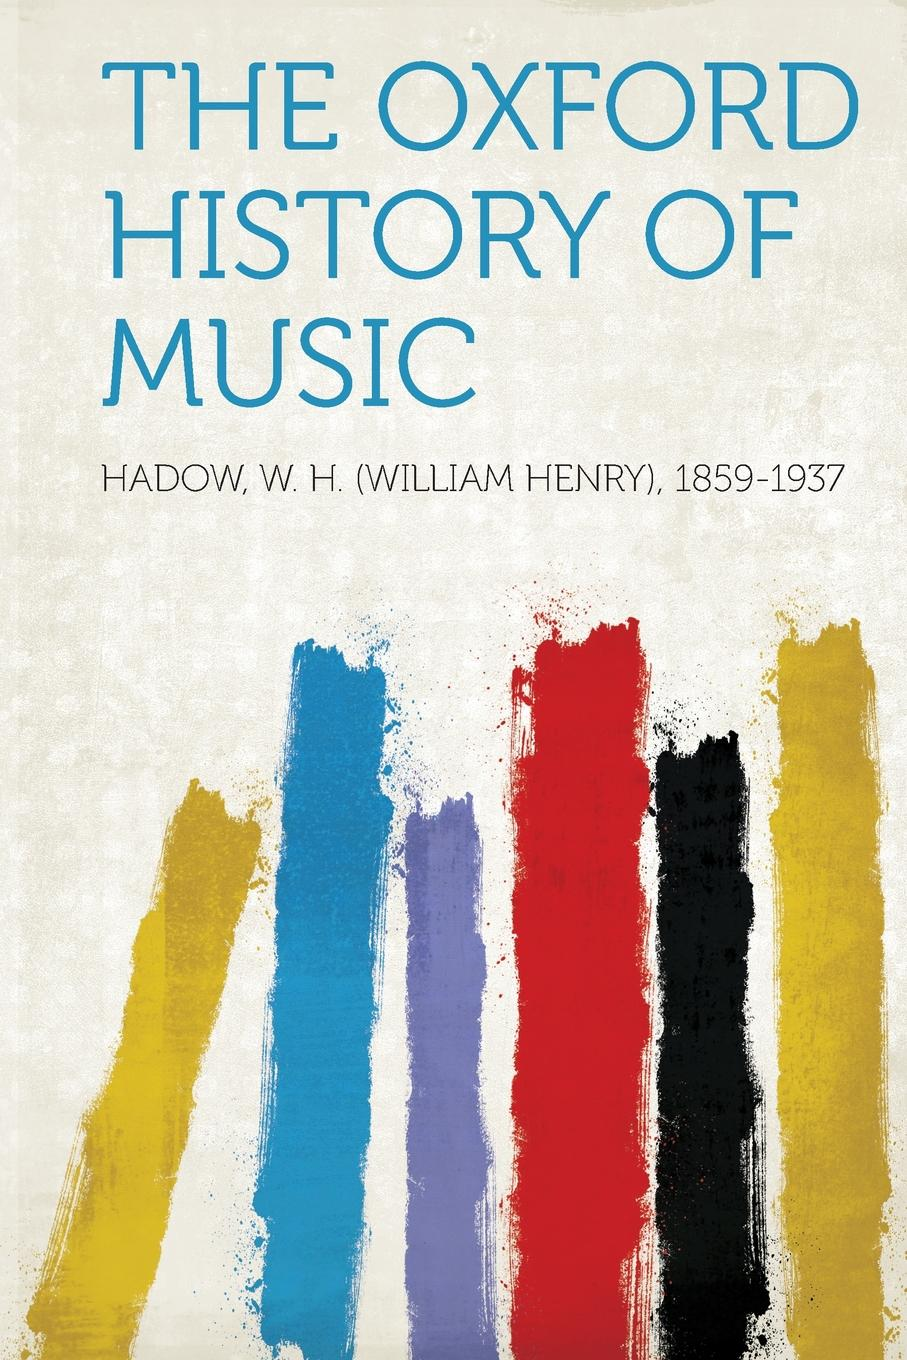 Hadow W. H. (William Henry) 1859-1937 The Oxford History of Music